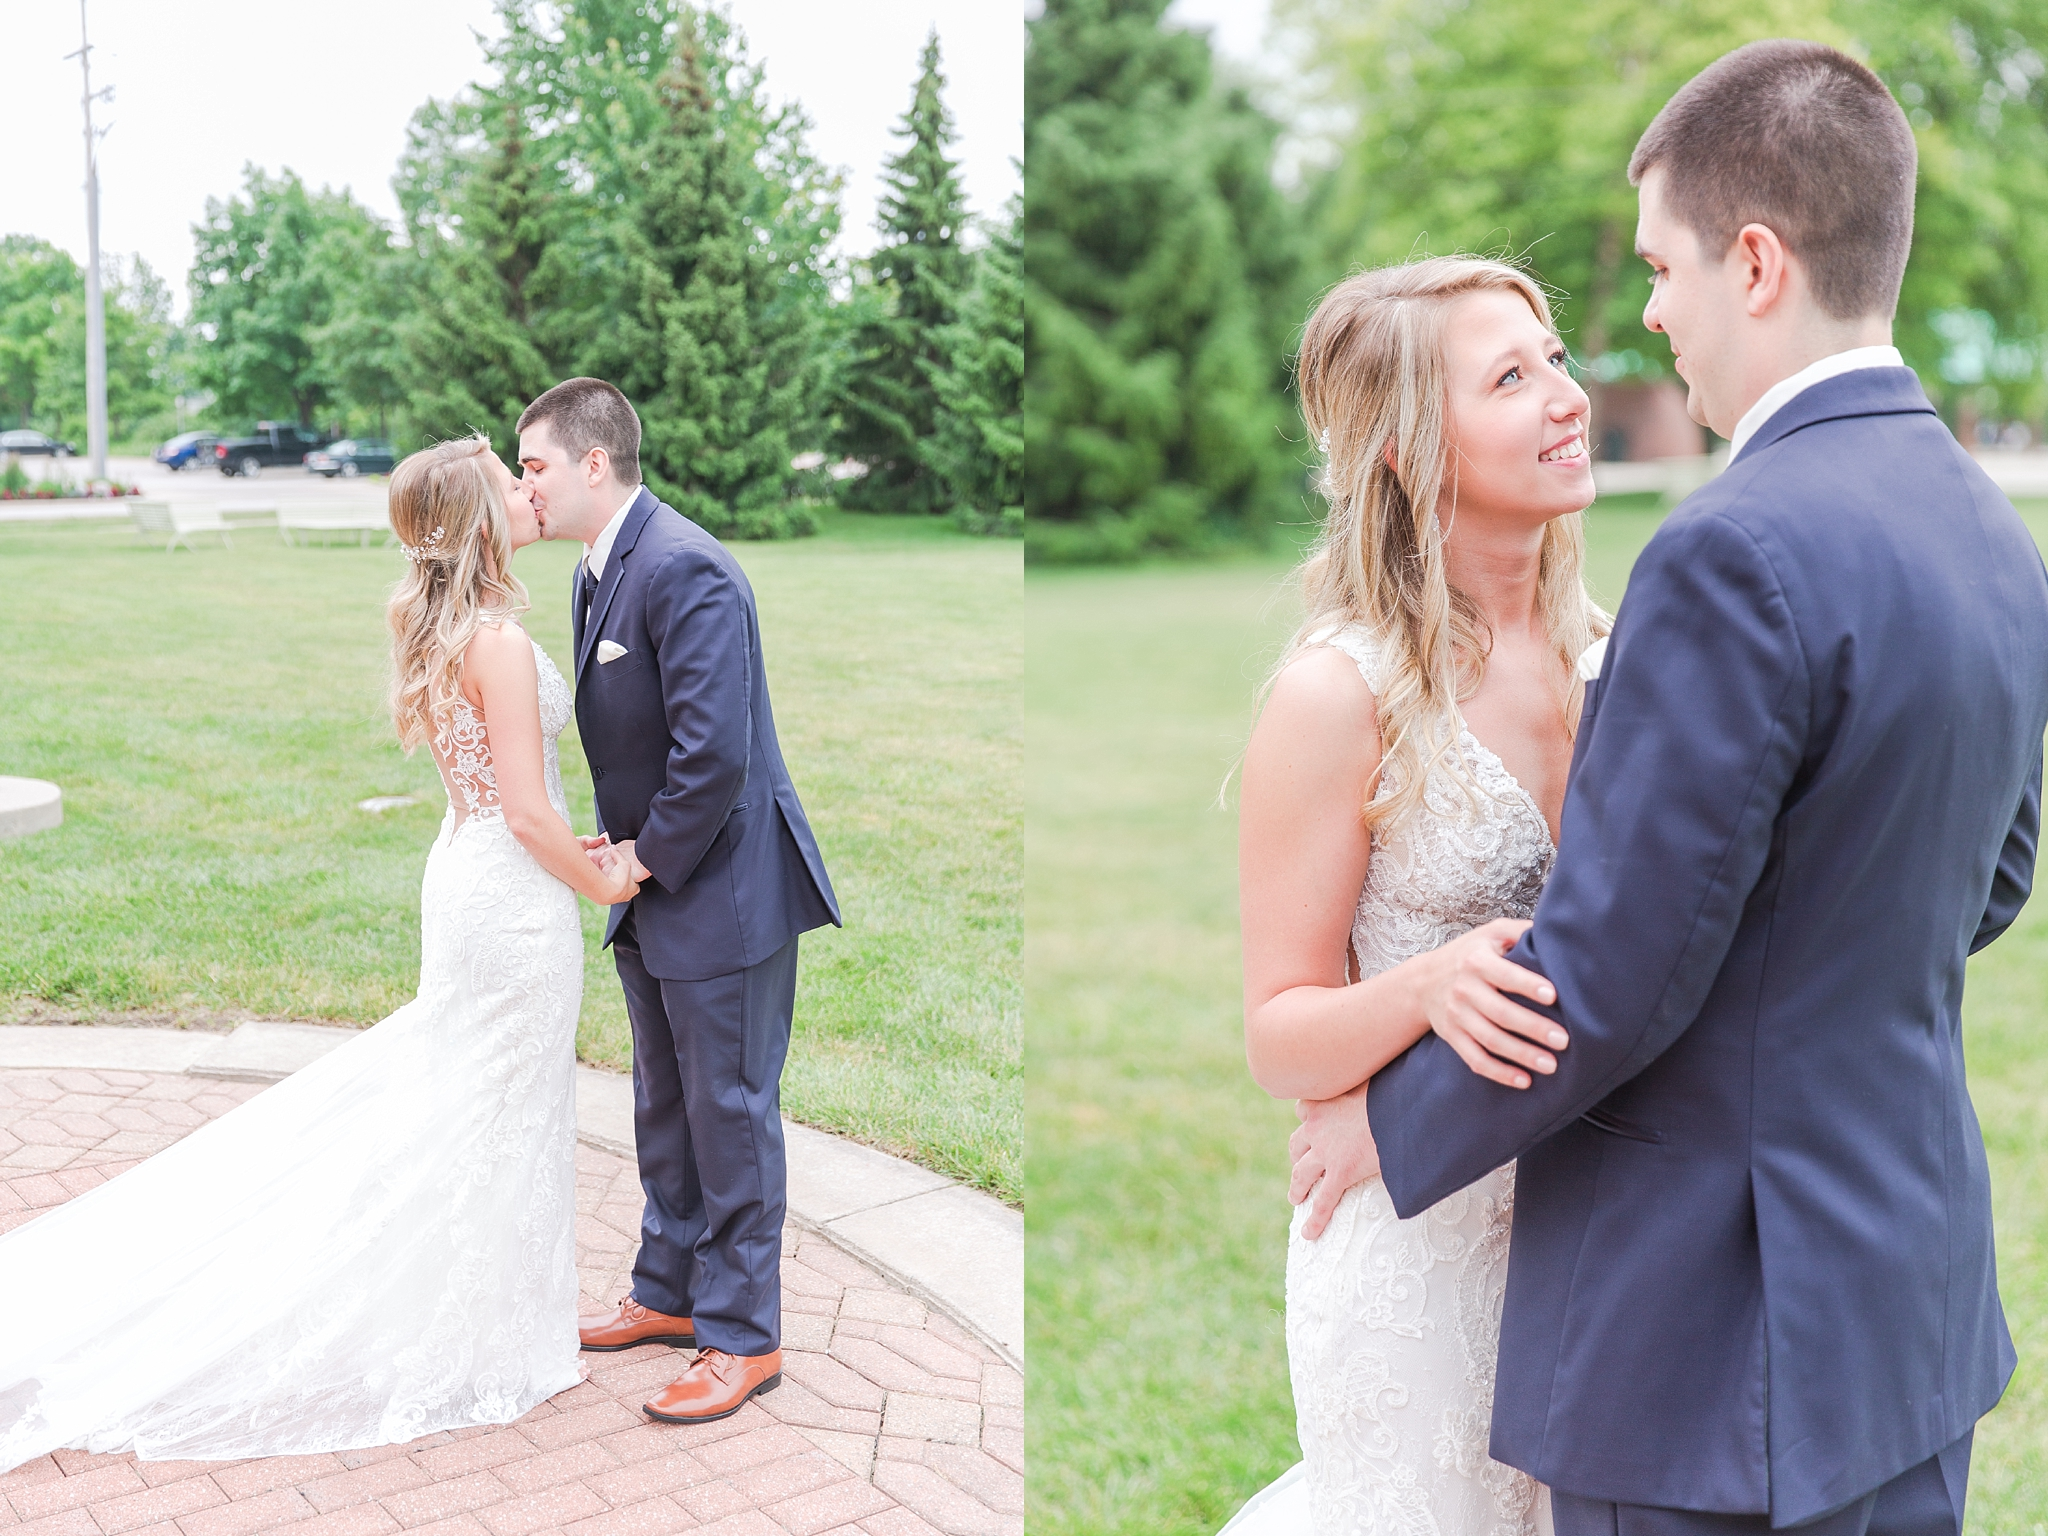 candid-romantic-wedding-photos-at-the-h-hotel-in-midland-michigan-by-courtney-carolyn-photography_0029.jpg